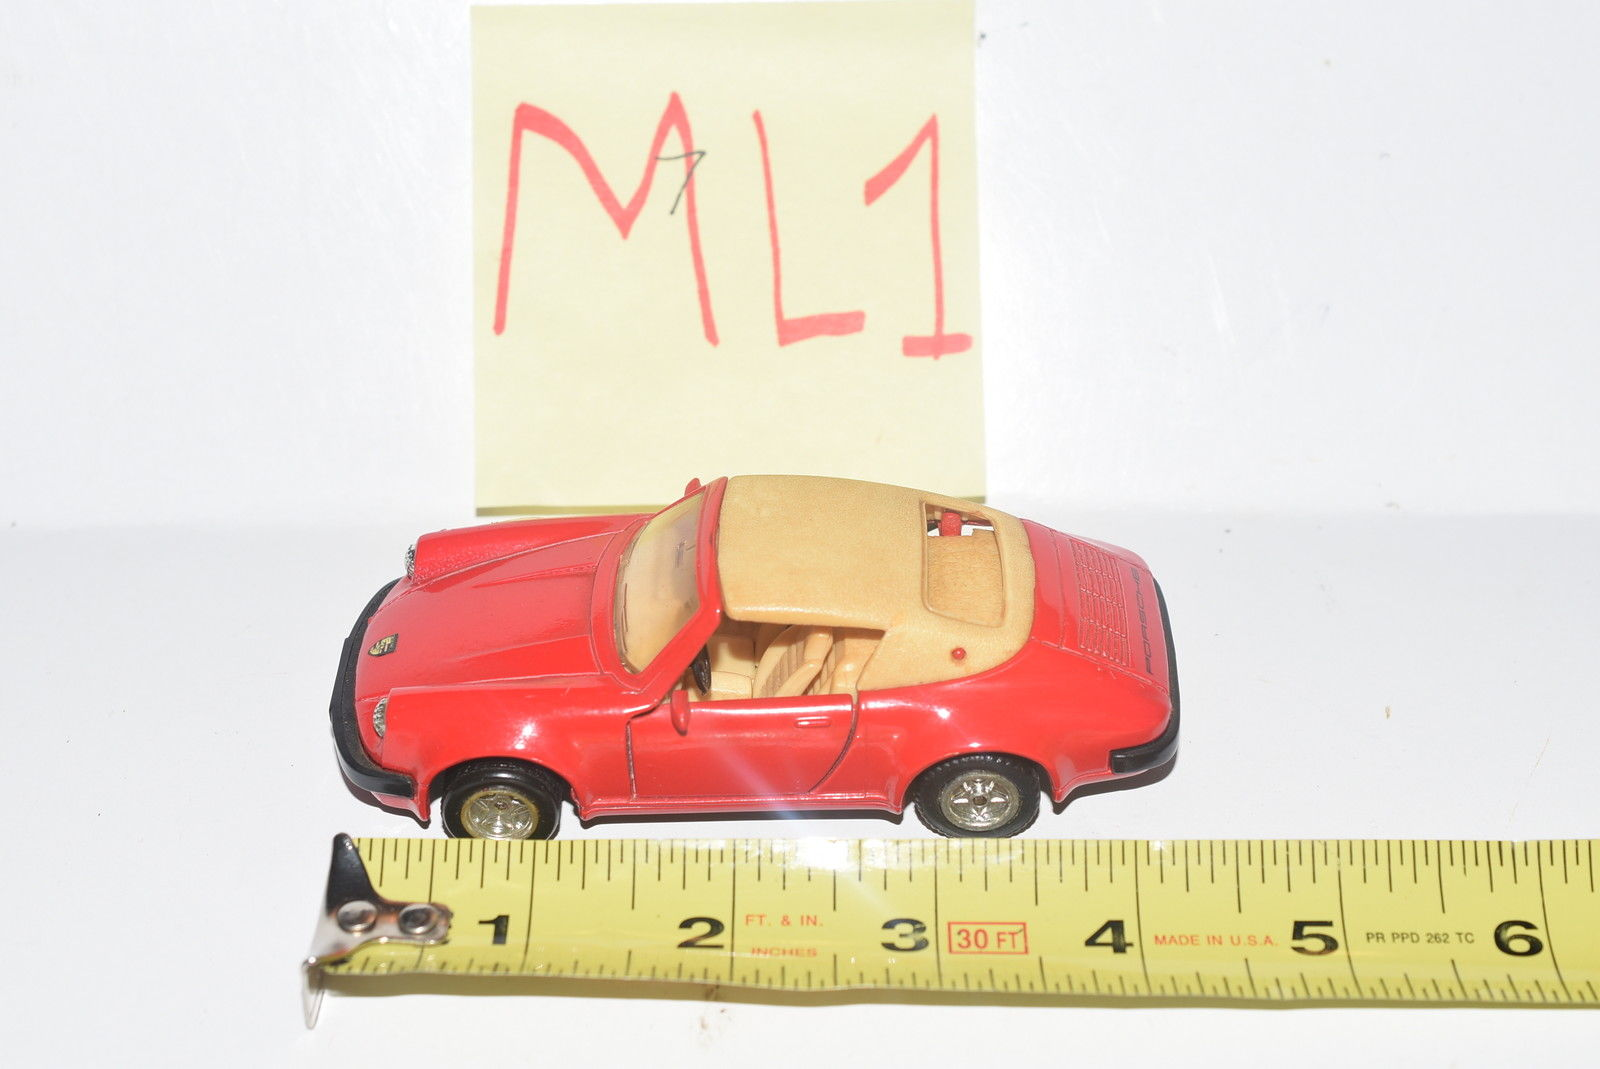 MC TOY CLASSIC SPORT CAR - PORSCHE 911 SC SCALE 1/36 - MADE IN MACAU - LOOSE